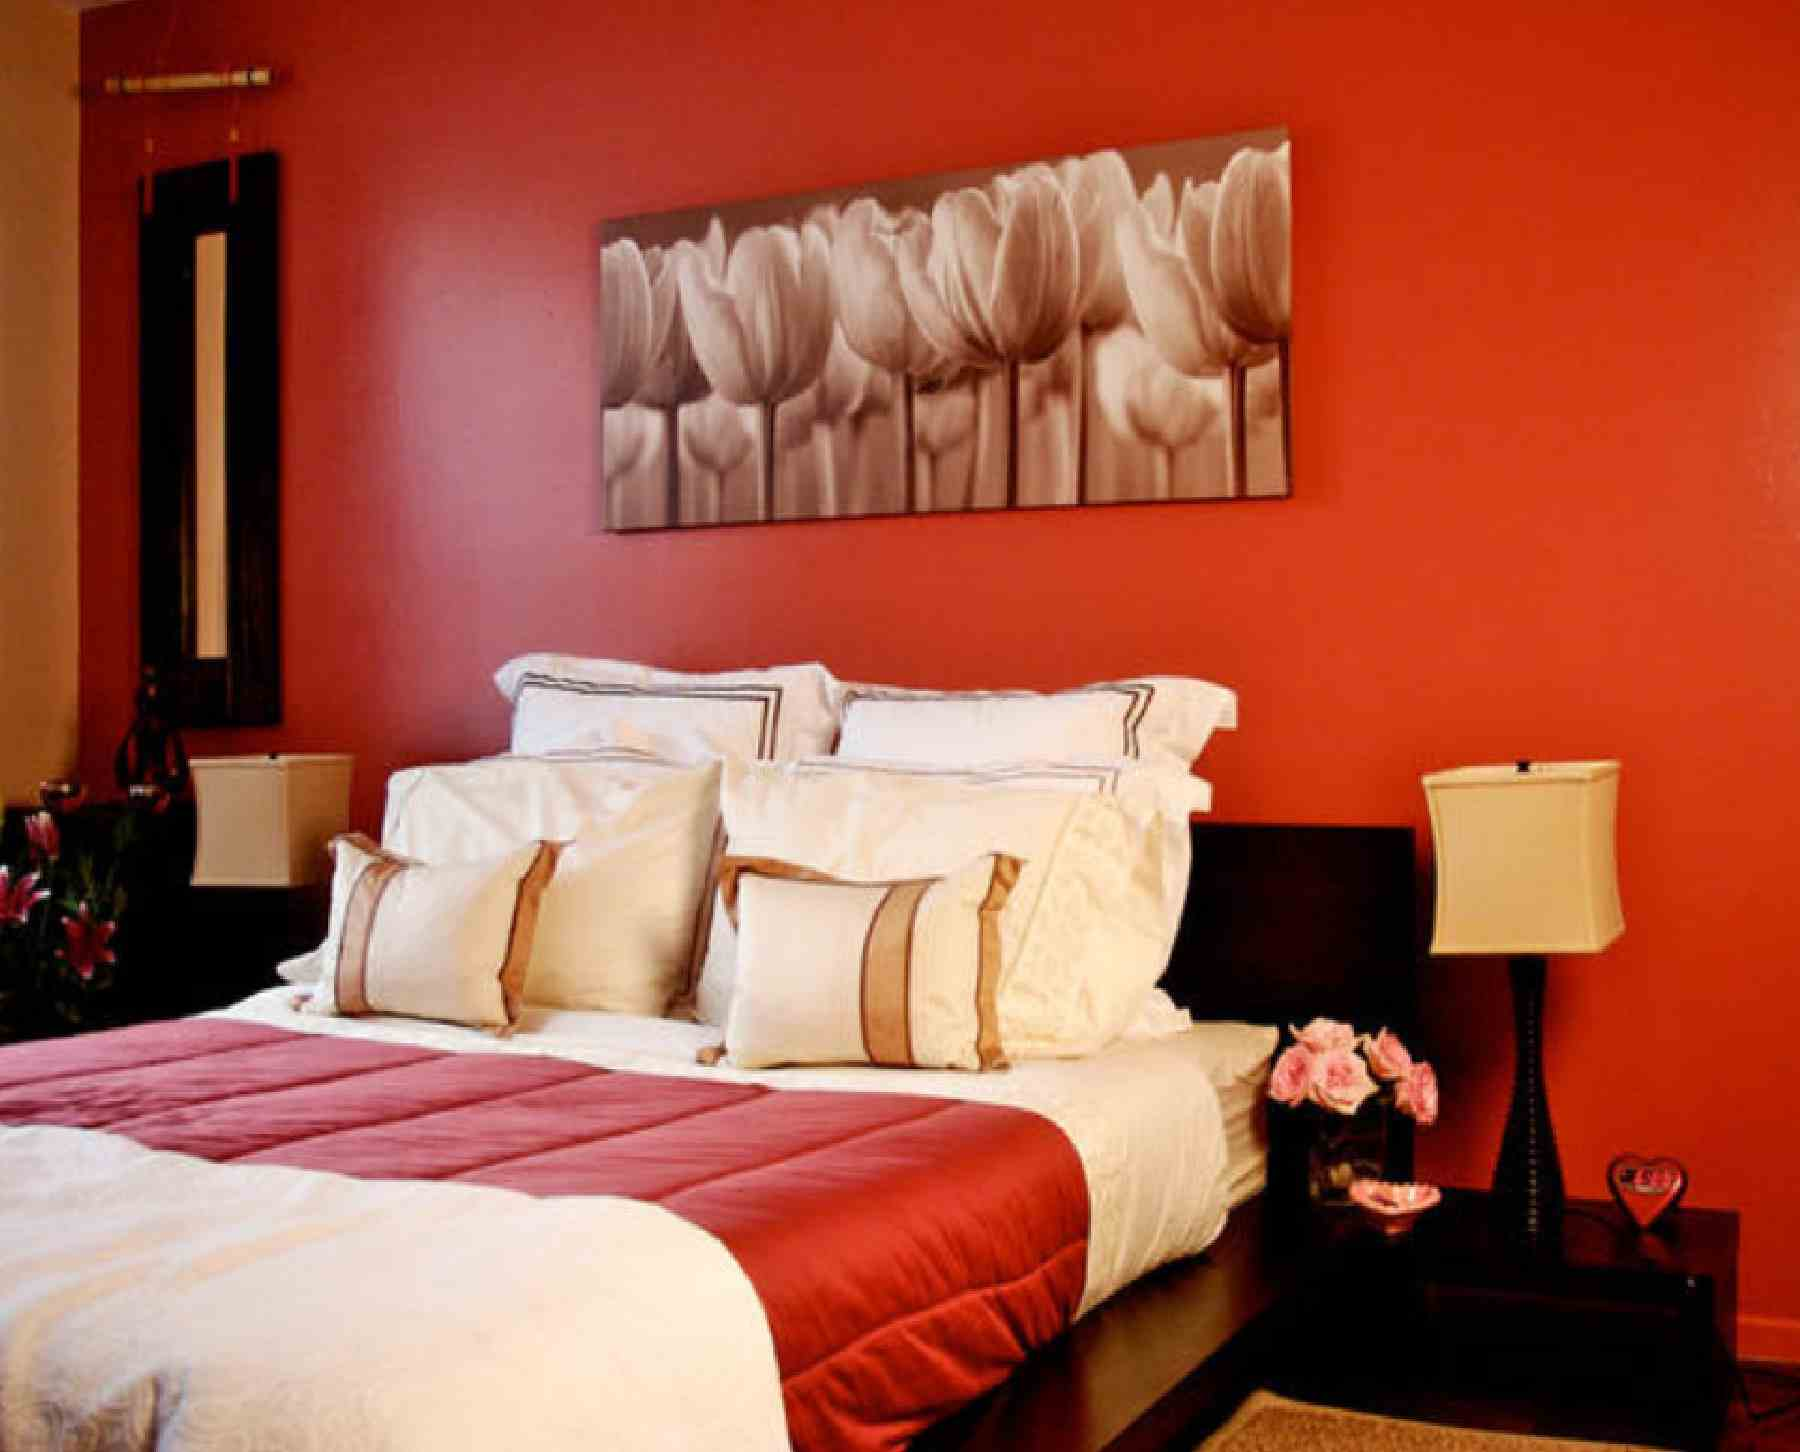 Fabulous orange bedroom decorating ideas and designs for 2013 pouted online magazine latest Master bedroom romantic paint colors